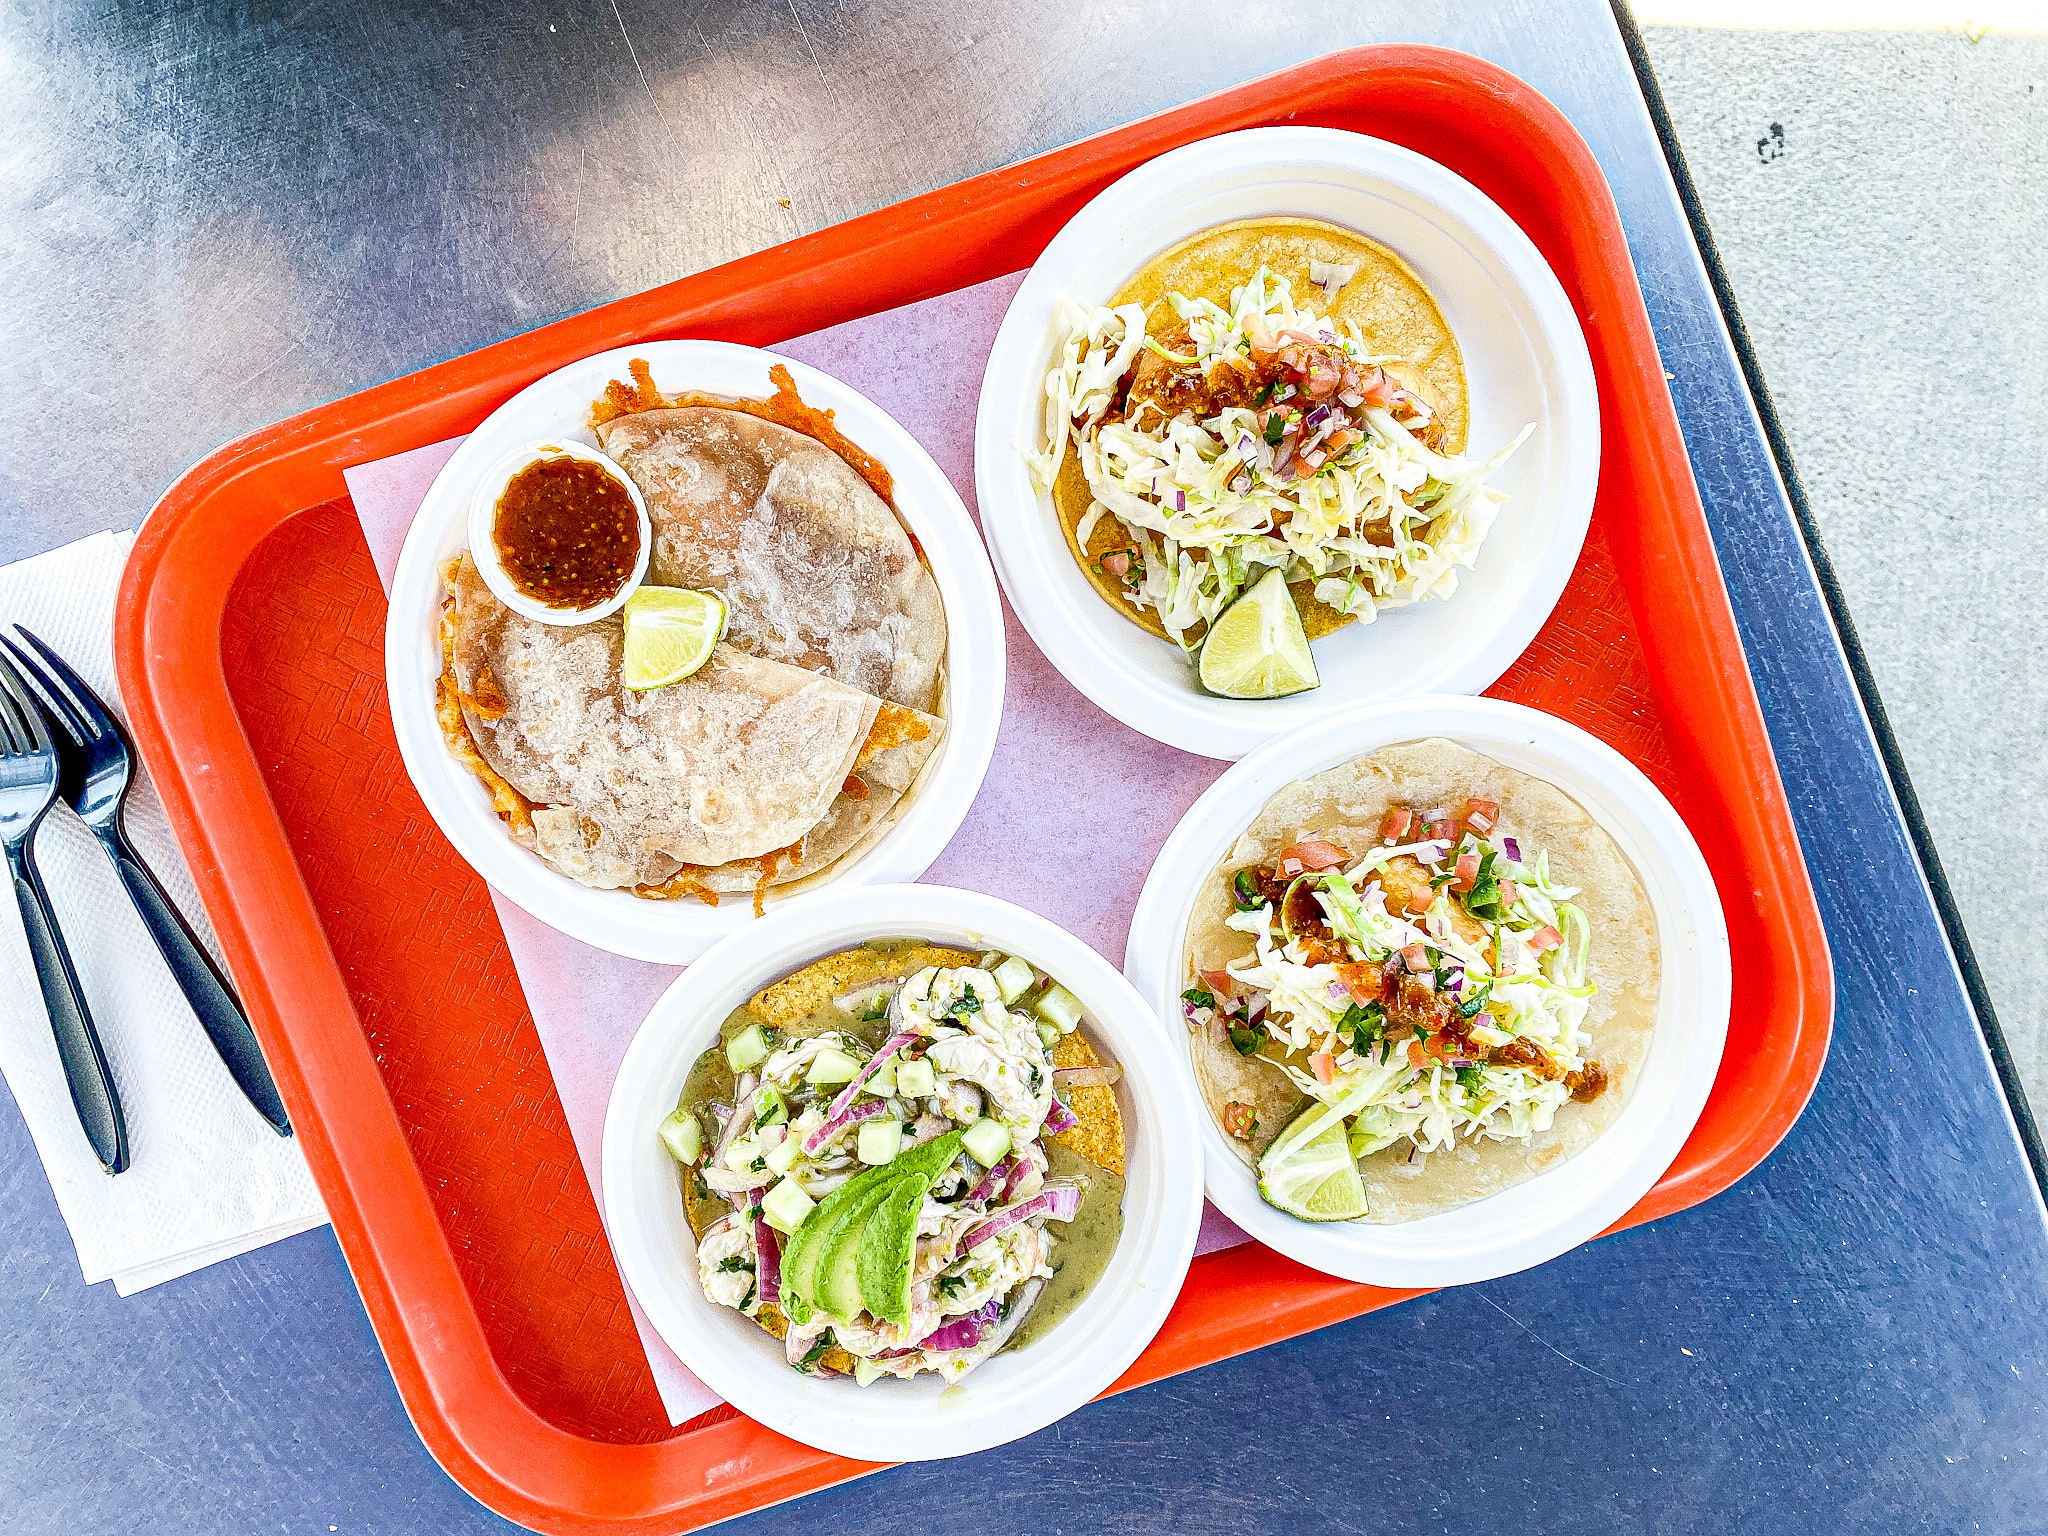 An overhead look at an orange tray filled with different types of seafood, including tacos.